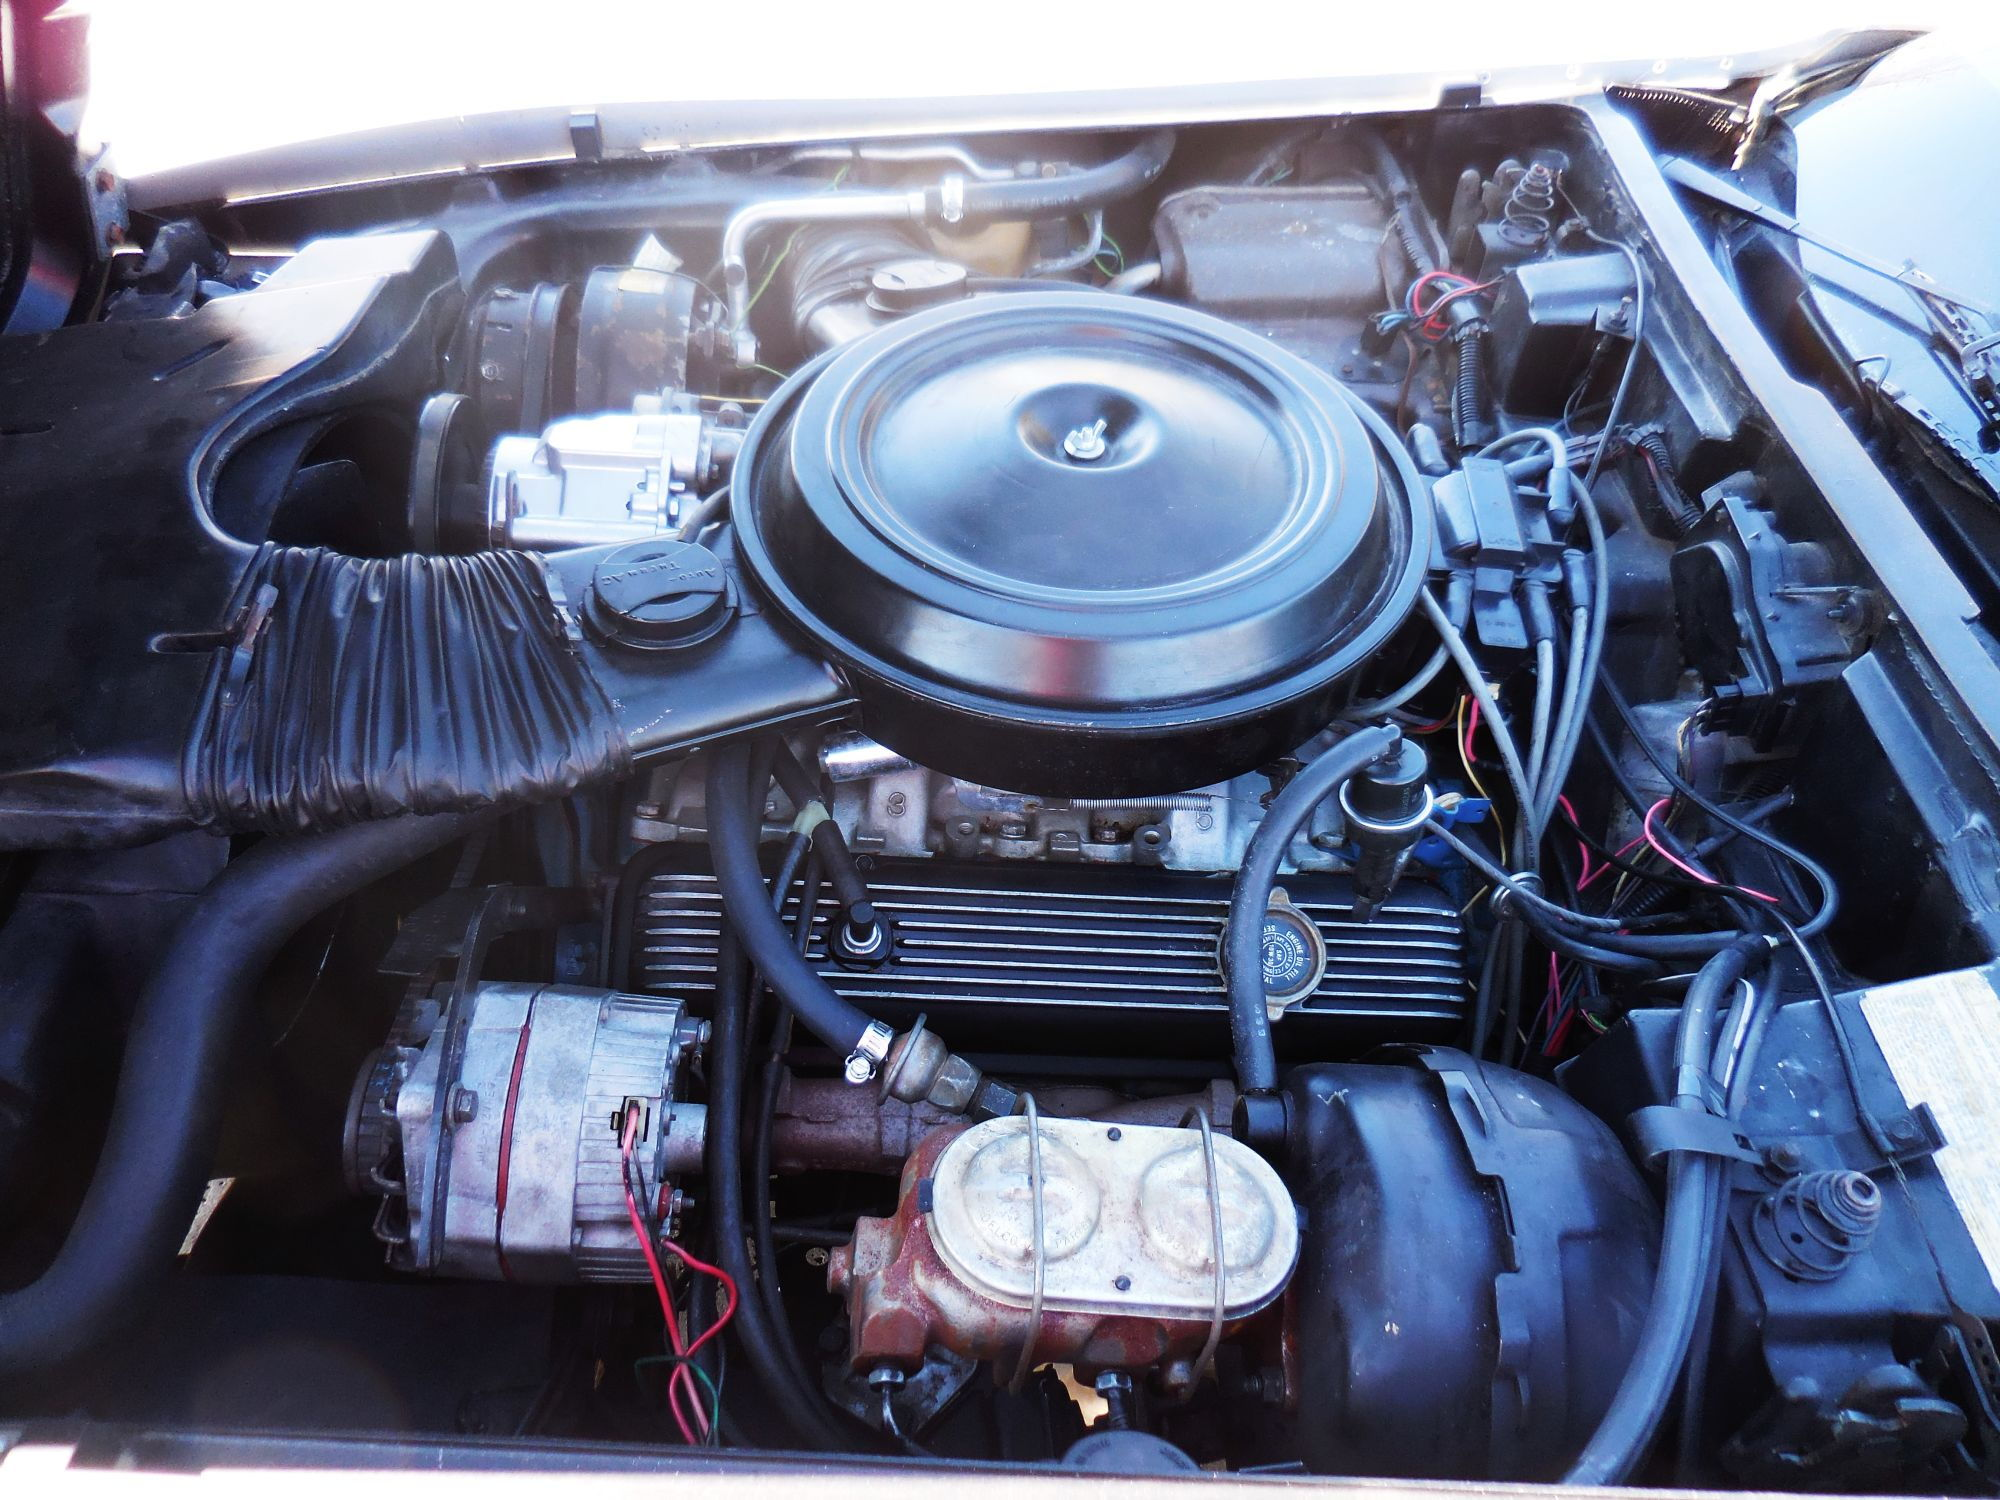 engine decal locations on a 1978 pace car? - CorvetteForum ...